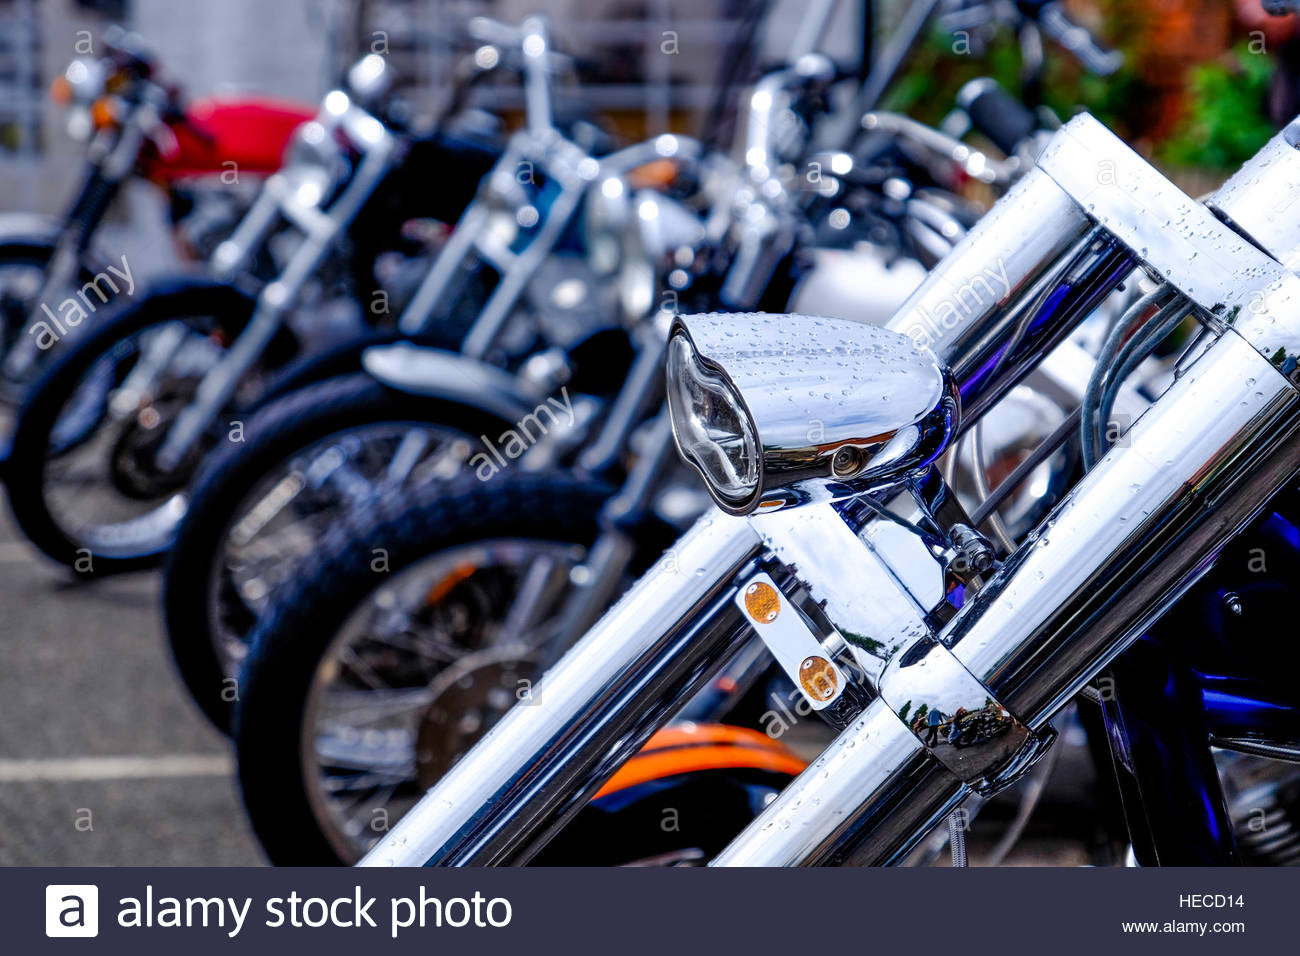 Motorcycles parked at a biker's event. - Stock Image